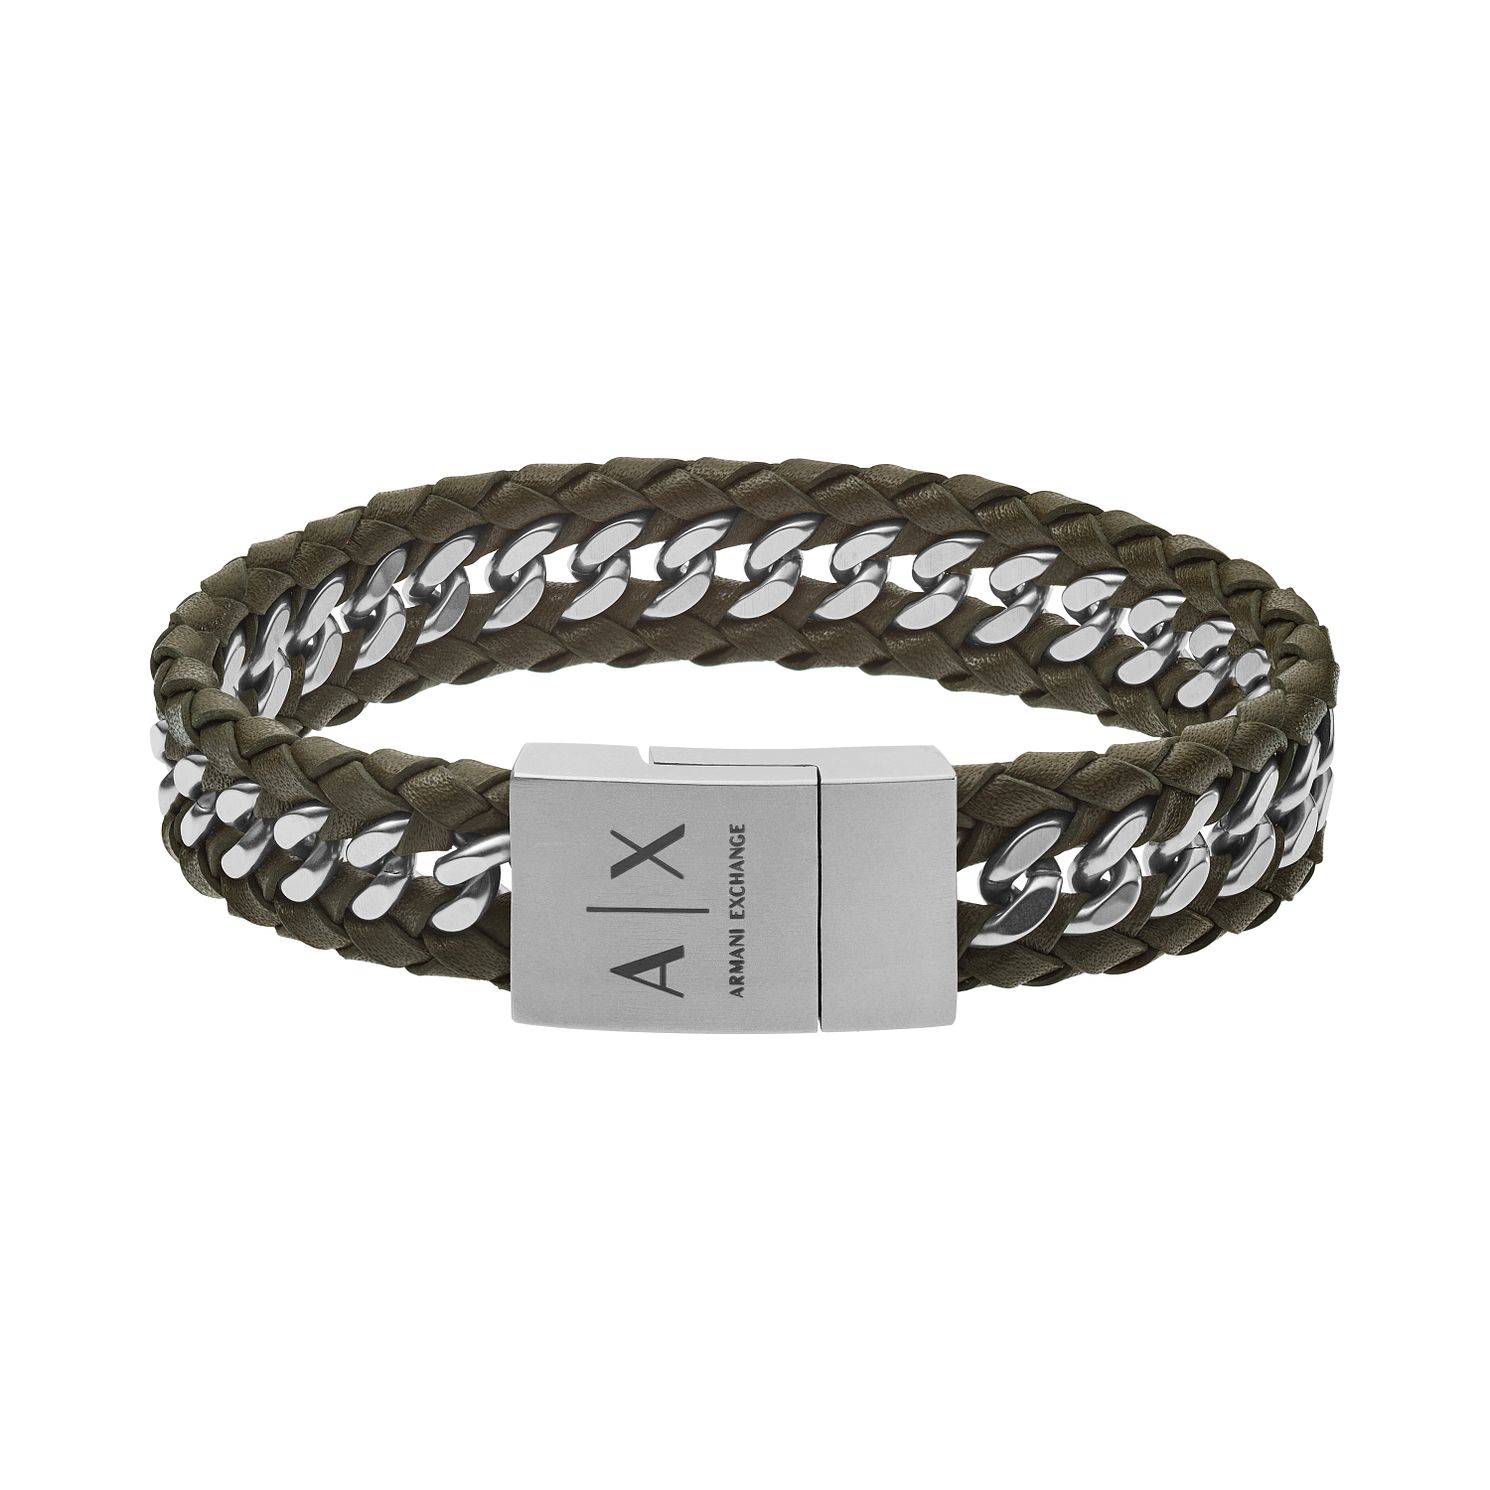 Armani Exchange Men's Green Leather Curb Chain Bracelet - Product number 4013581